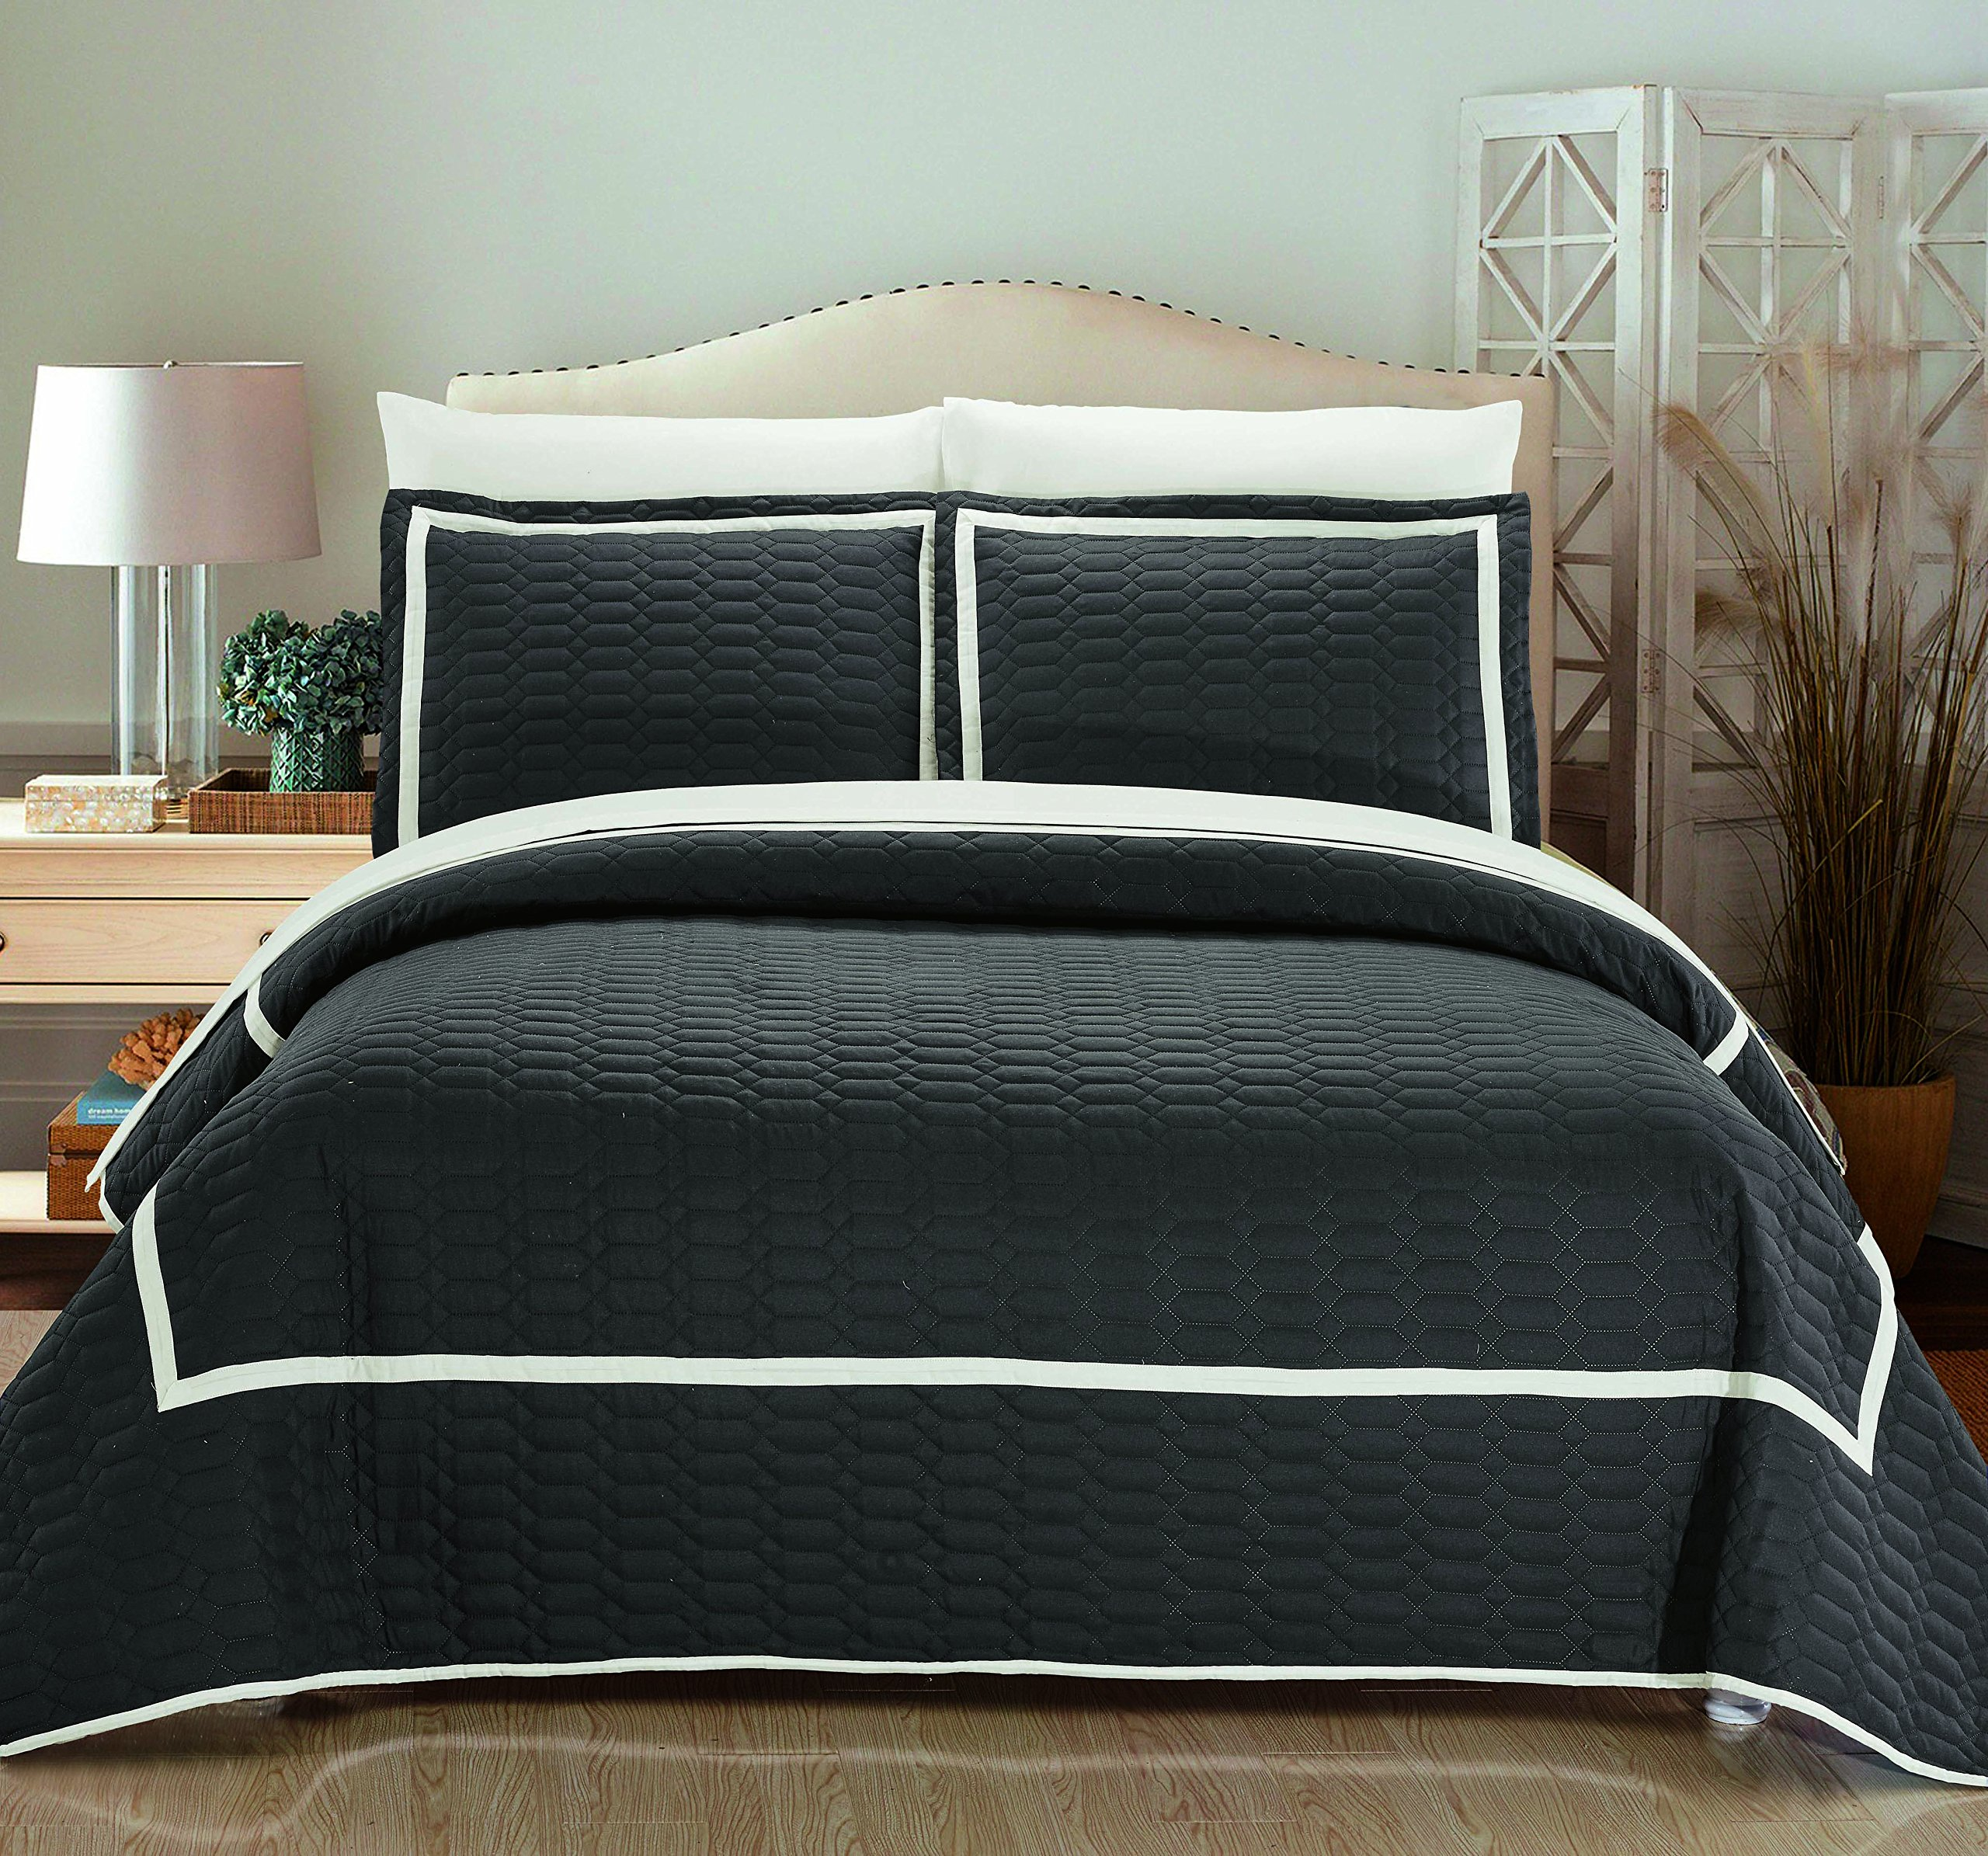 Chic Home 3 Piece Birmingham Hotel Collection 2 Tone Banded Quilted Geometrical Embroidered, Quilt Set , King, Grey